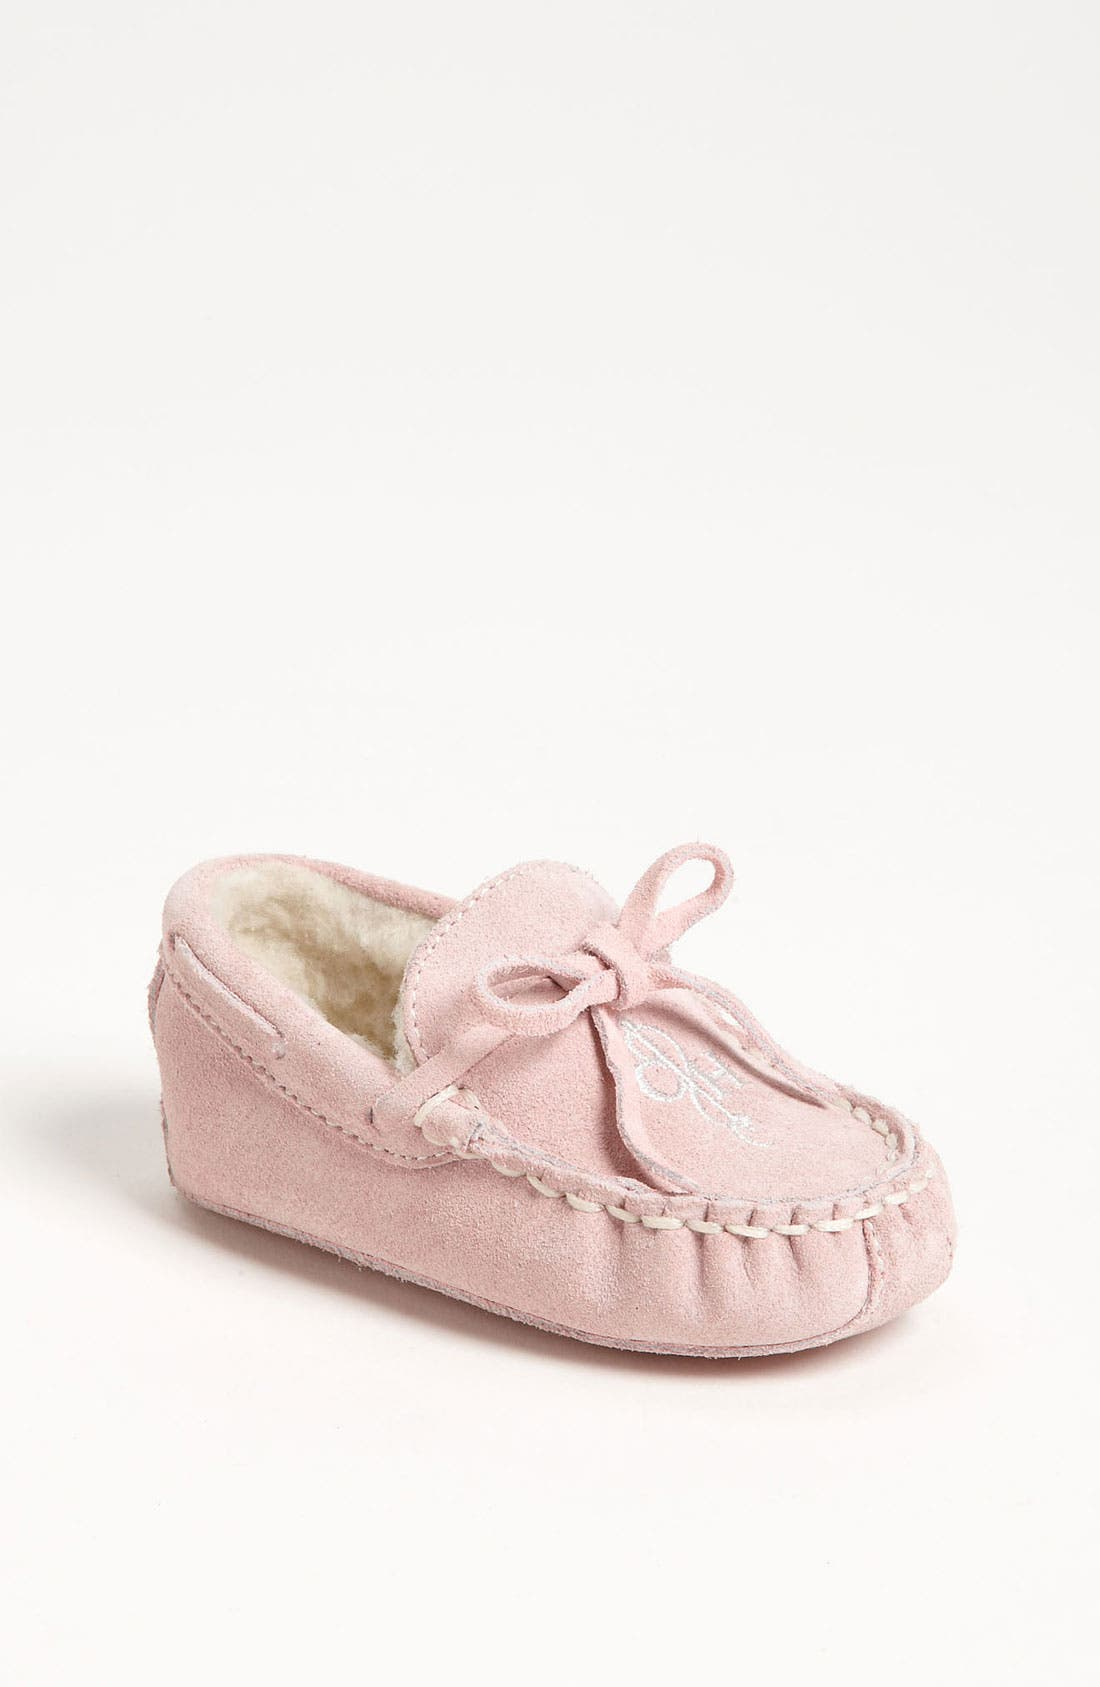 Alternate Image 1 Selected - Cole Haan 'Mini' Moccasin with Faux Shearling Lining (Baby)